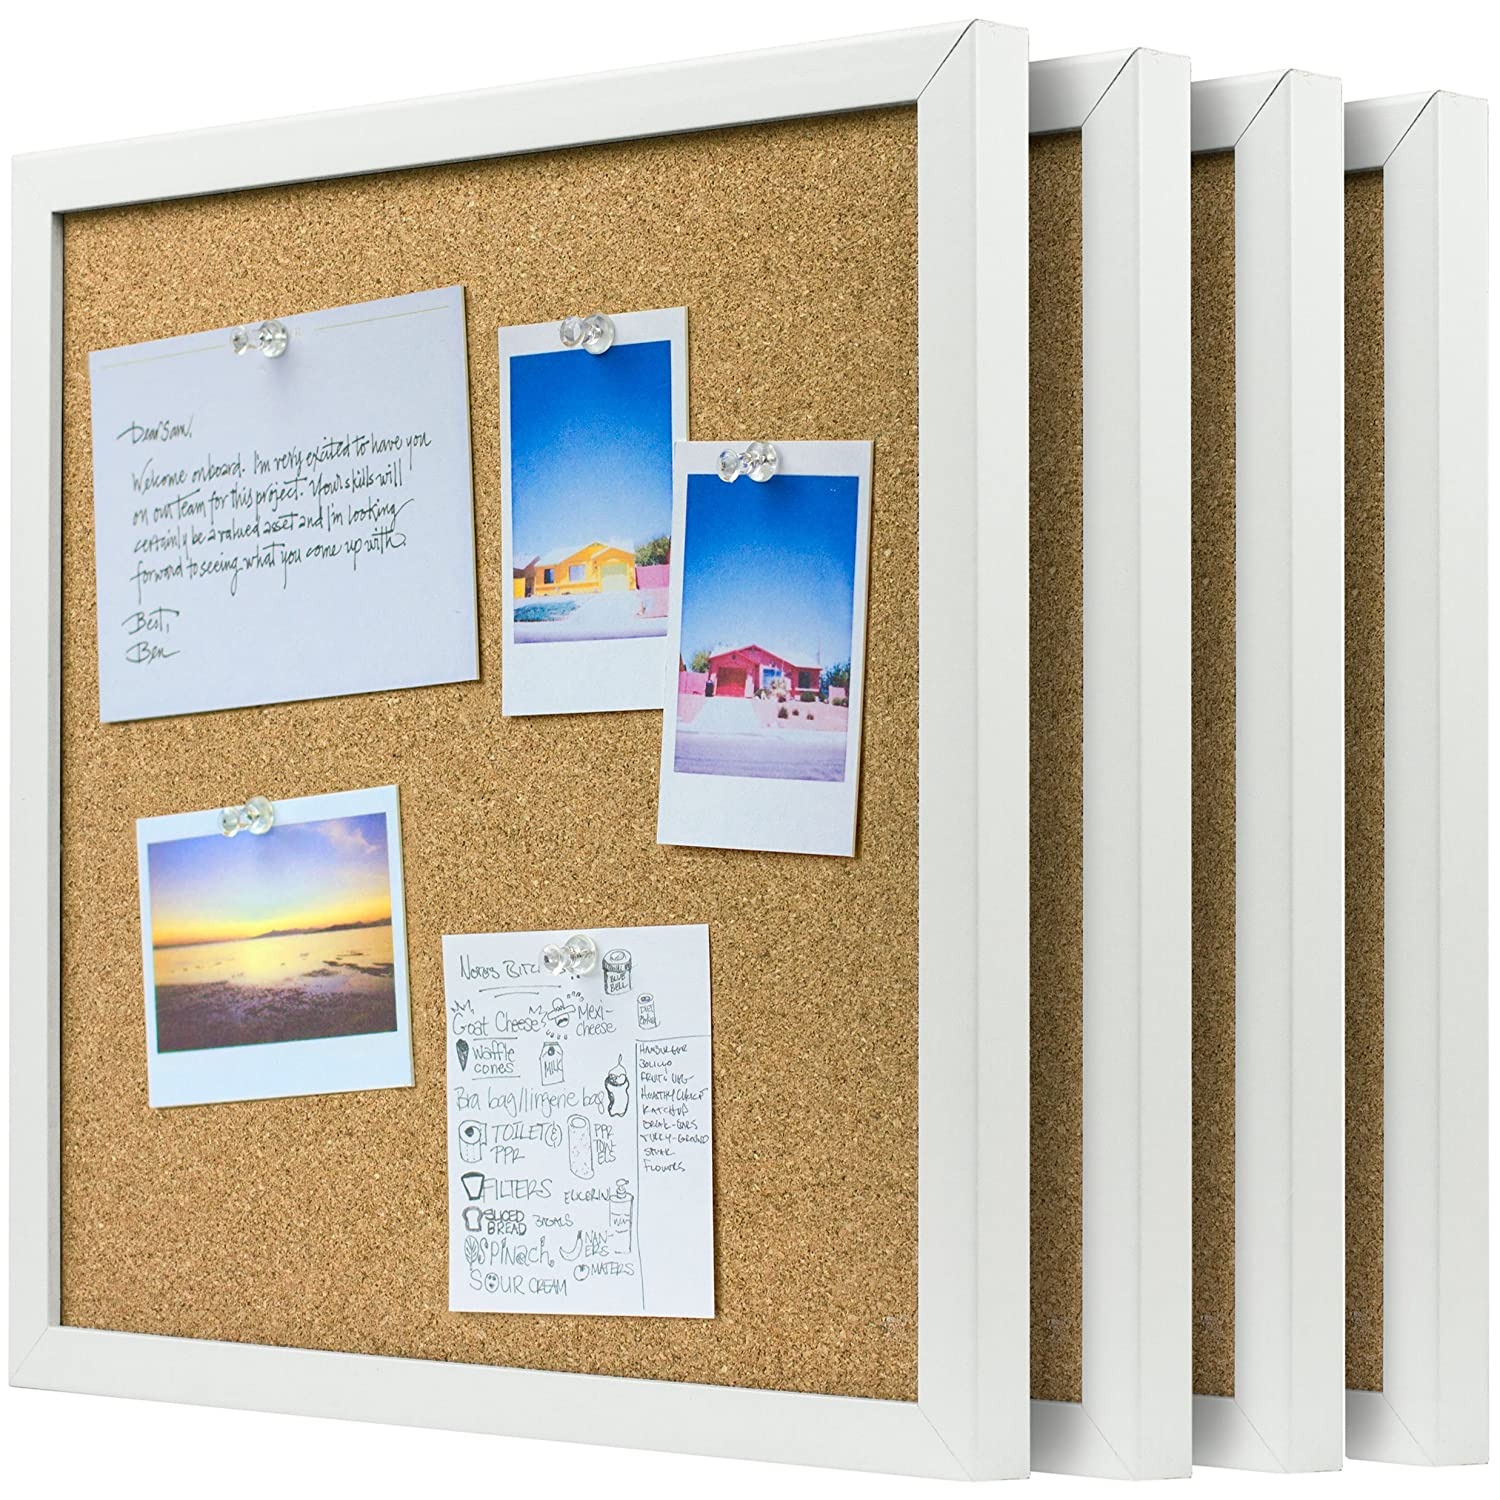 OrgaNice Cork Board/Bulletin Board - 4x Beautifully Framed 12 x 12-Inch Tiles - Reinforced Frame - ZERO Flaking - Start Your Dream Project - Mounting Hardware Included - BONUS 10x Push Pins PGCORKBOARD